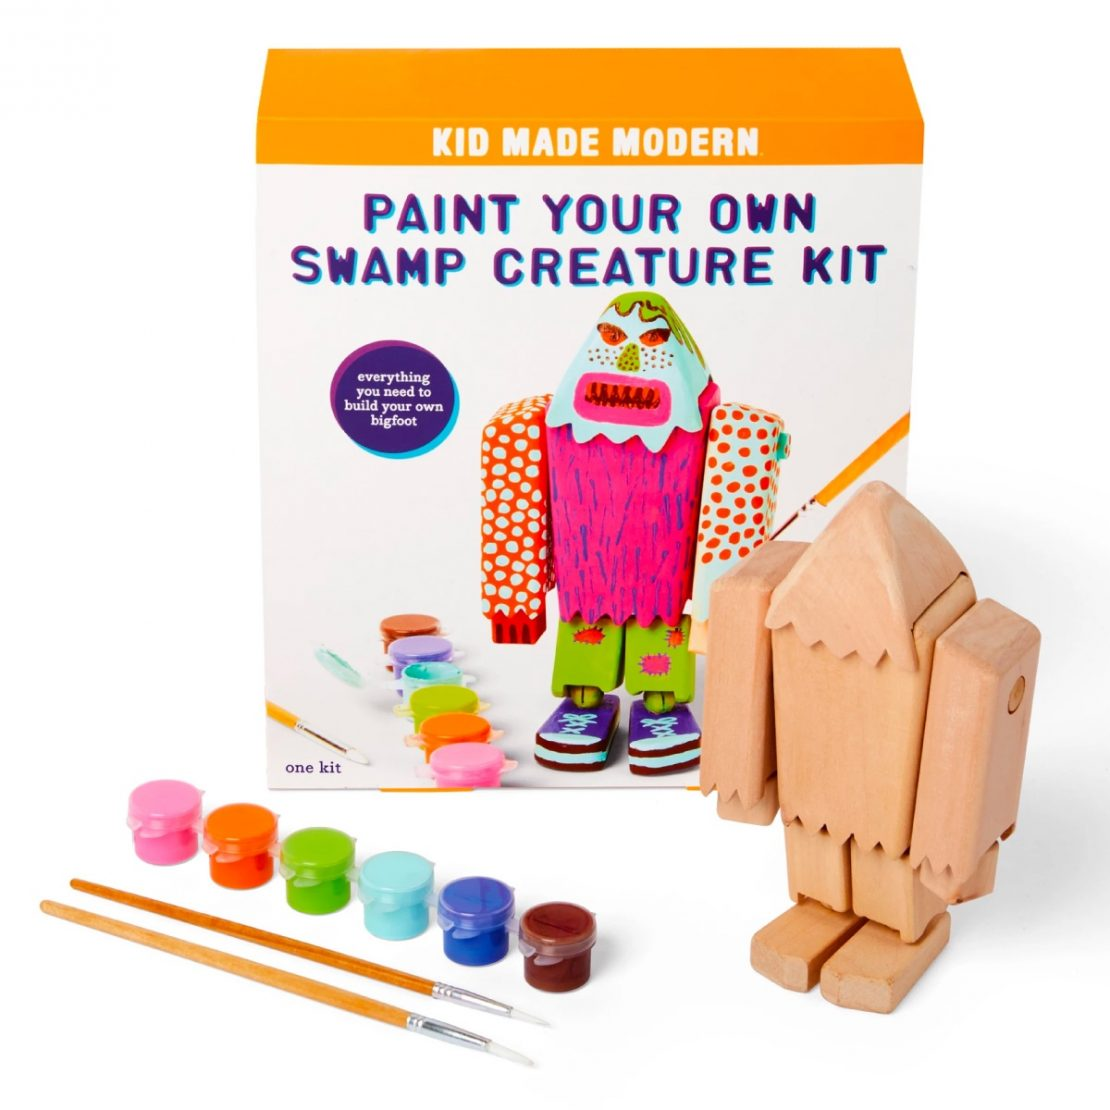 Paint Your Own Swamp Creature from Kid Made Modern